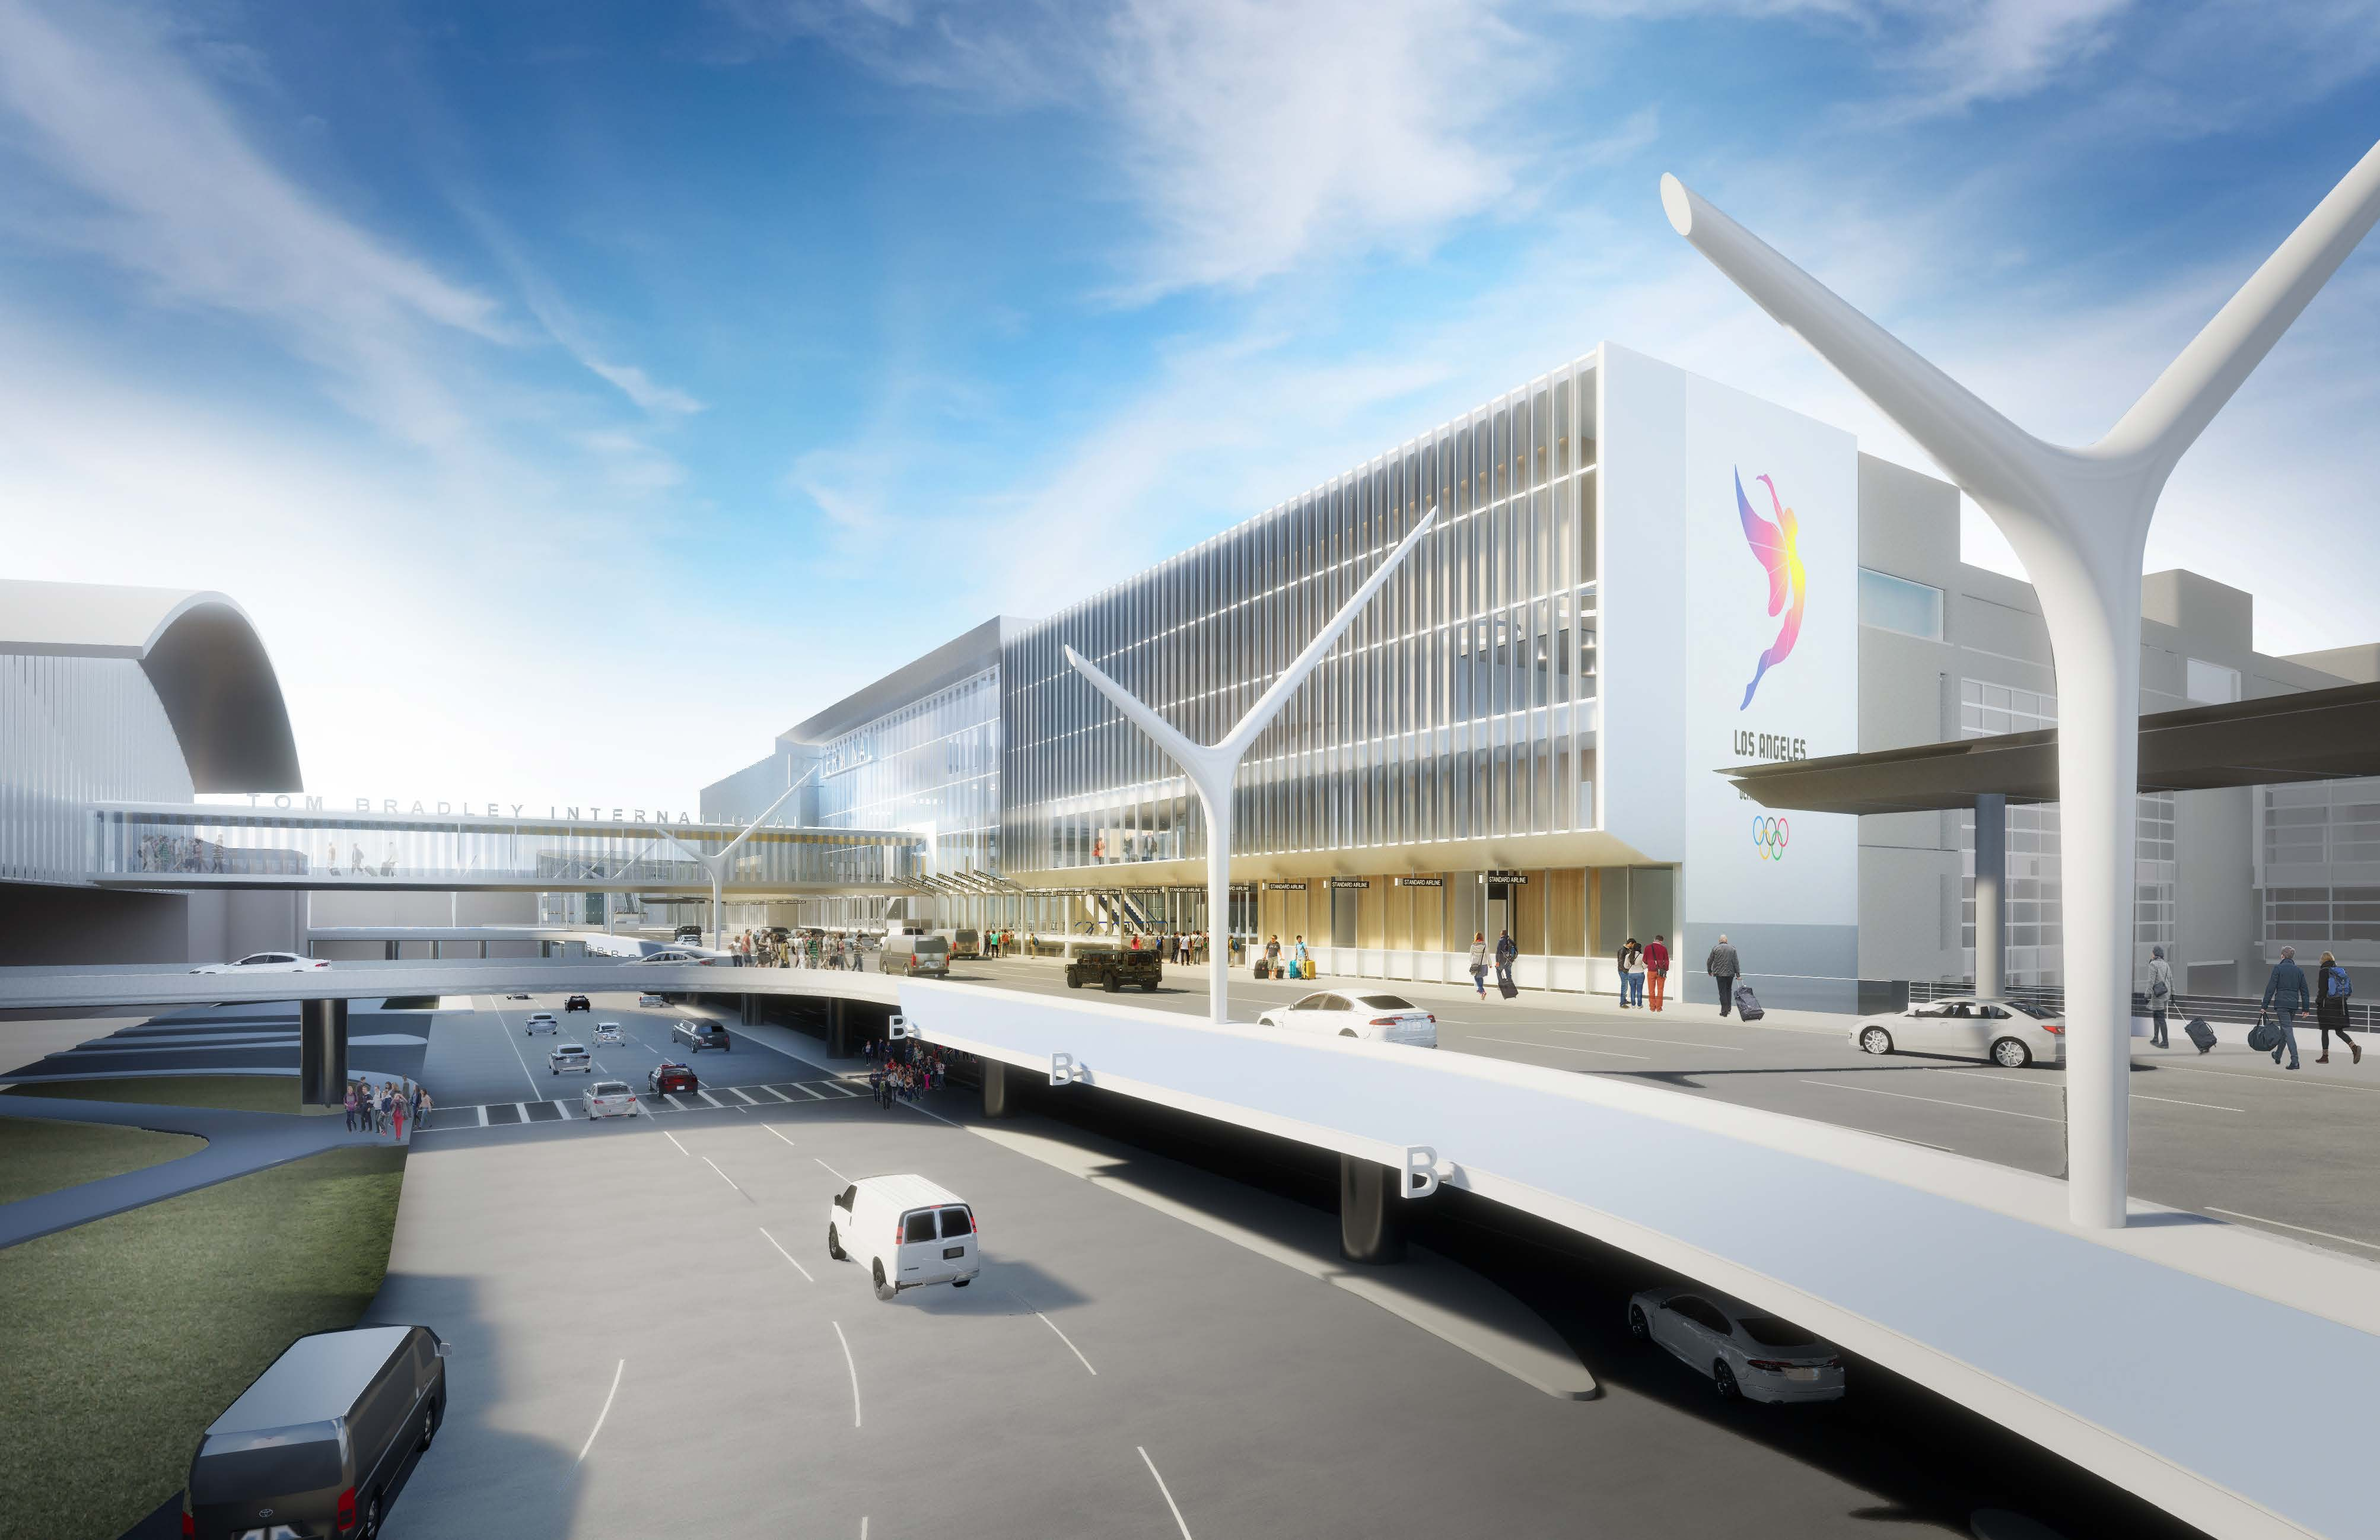 New terminal cores will connect the Automated People Mover to the airport terminals.